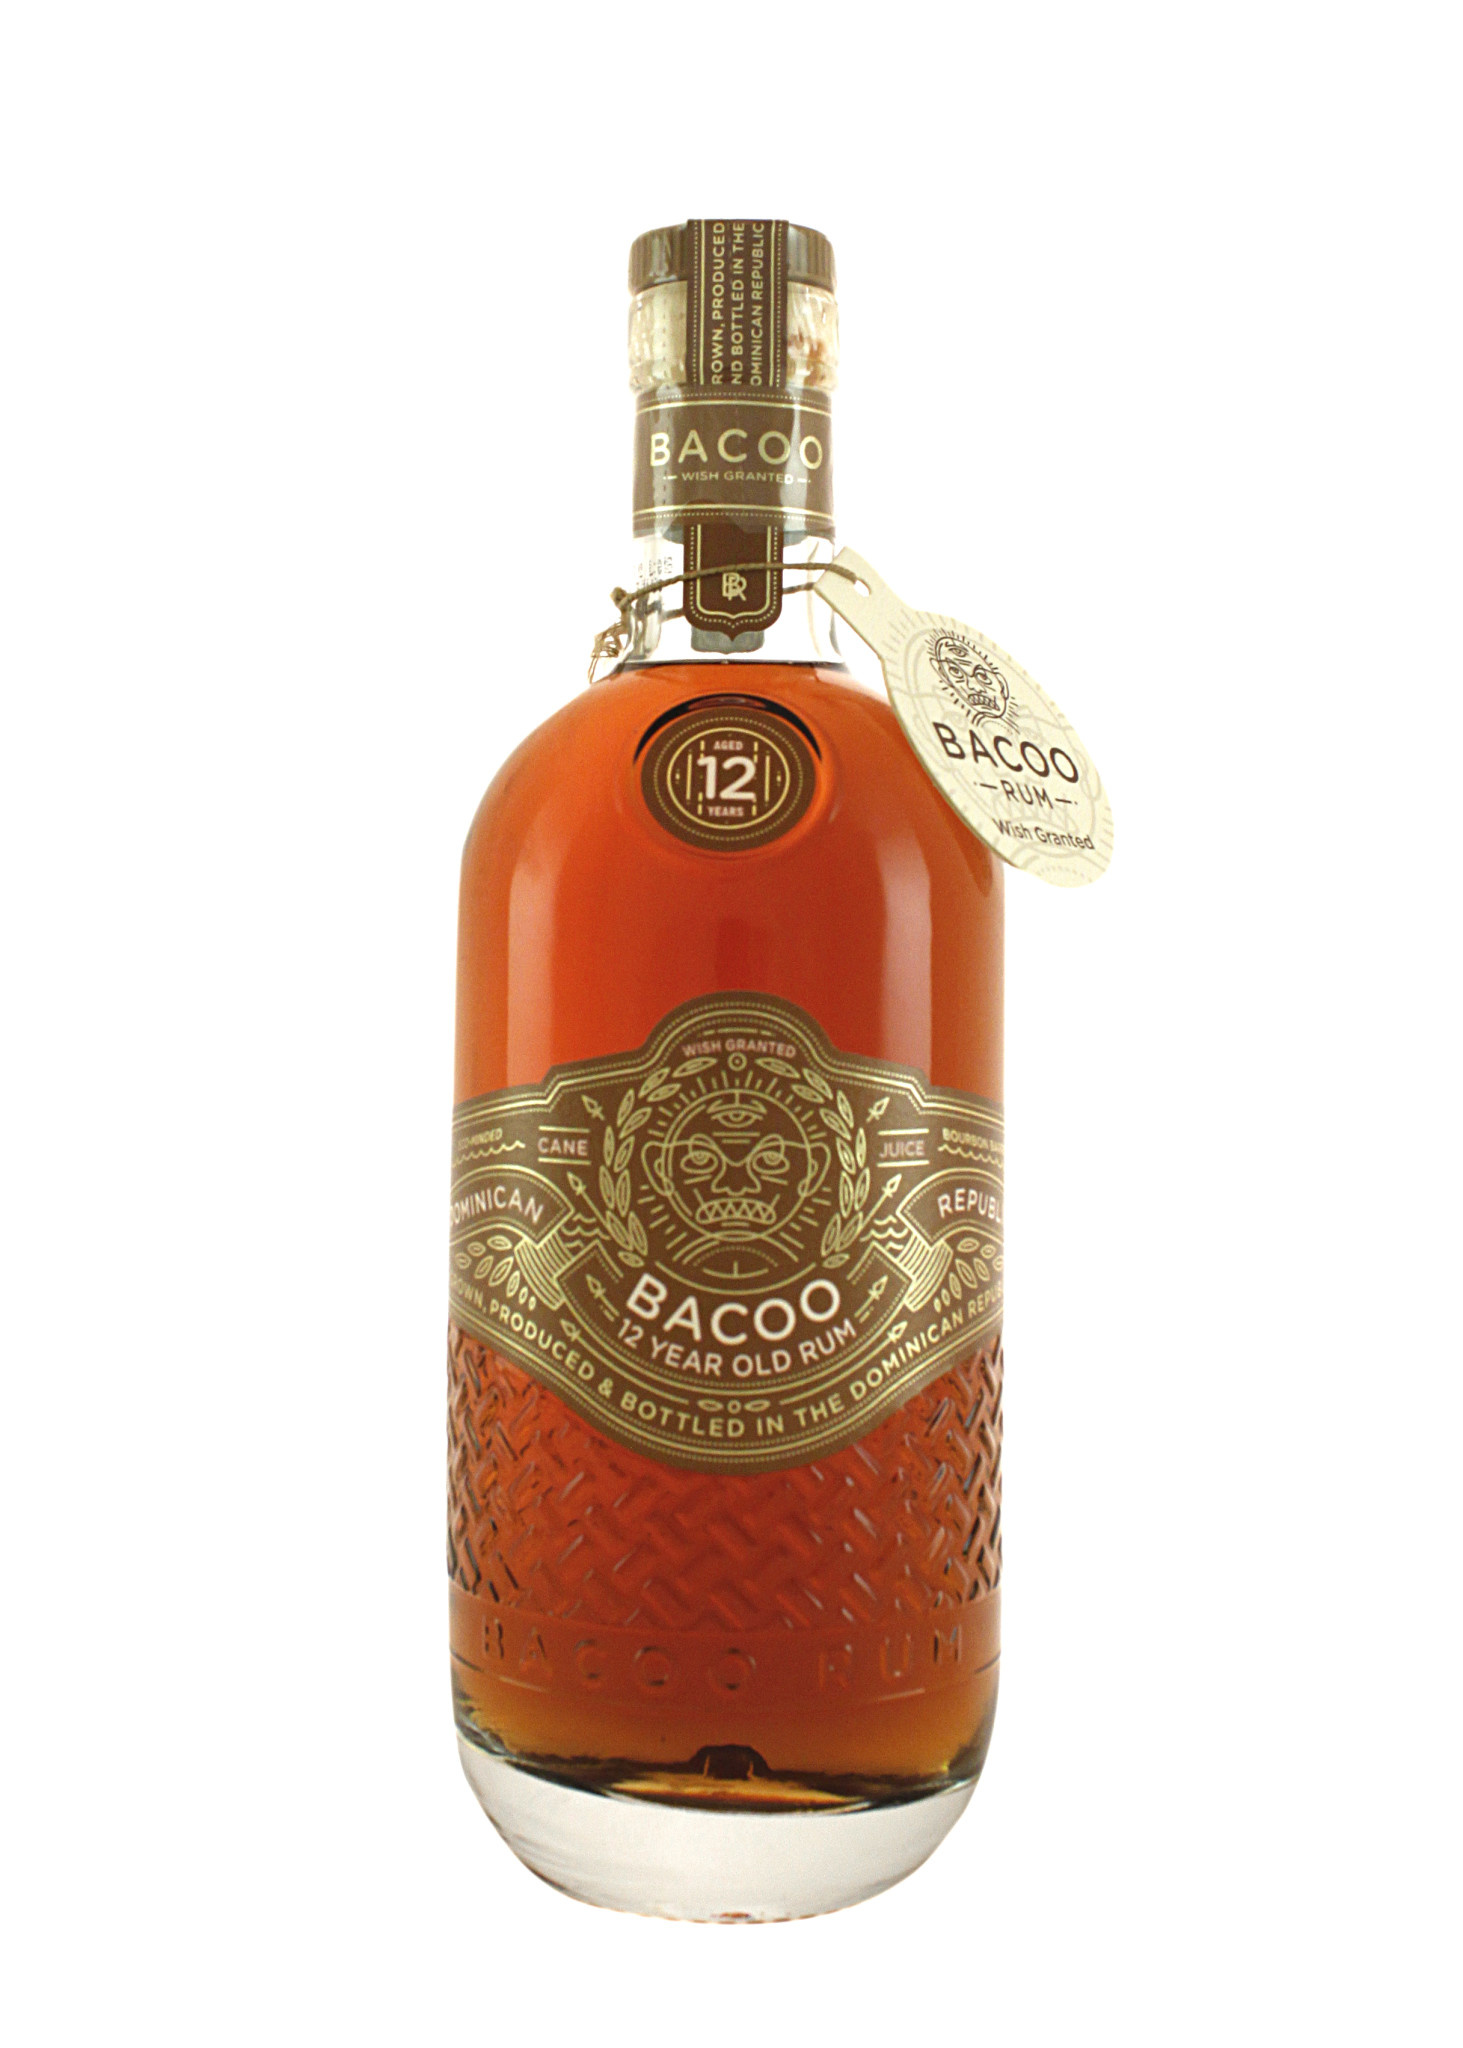 Bacoo Rum Aged 12 Years, Dominican Republic